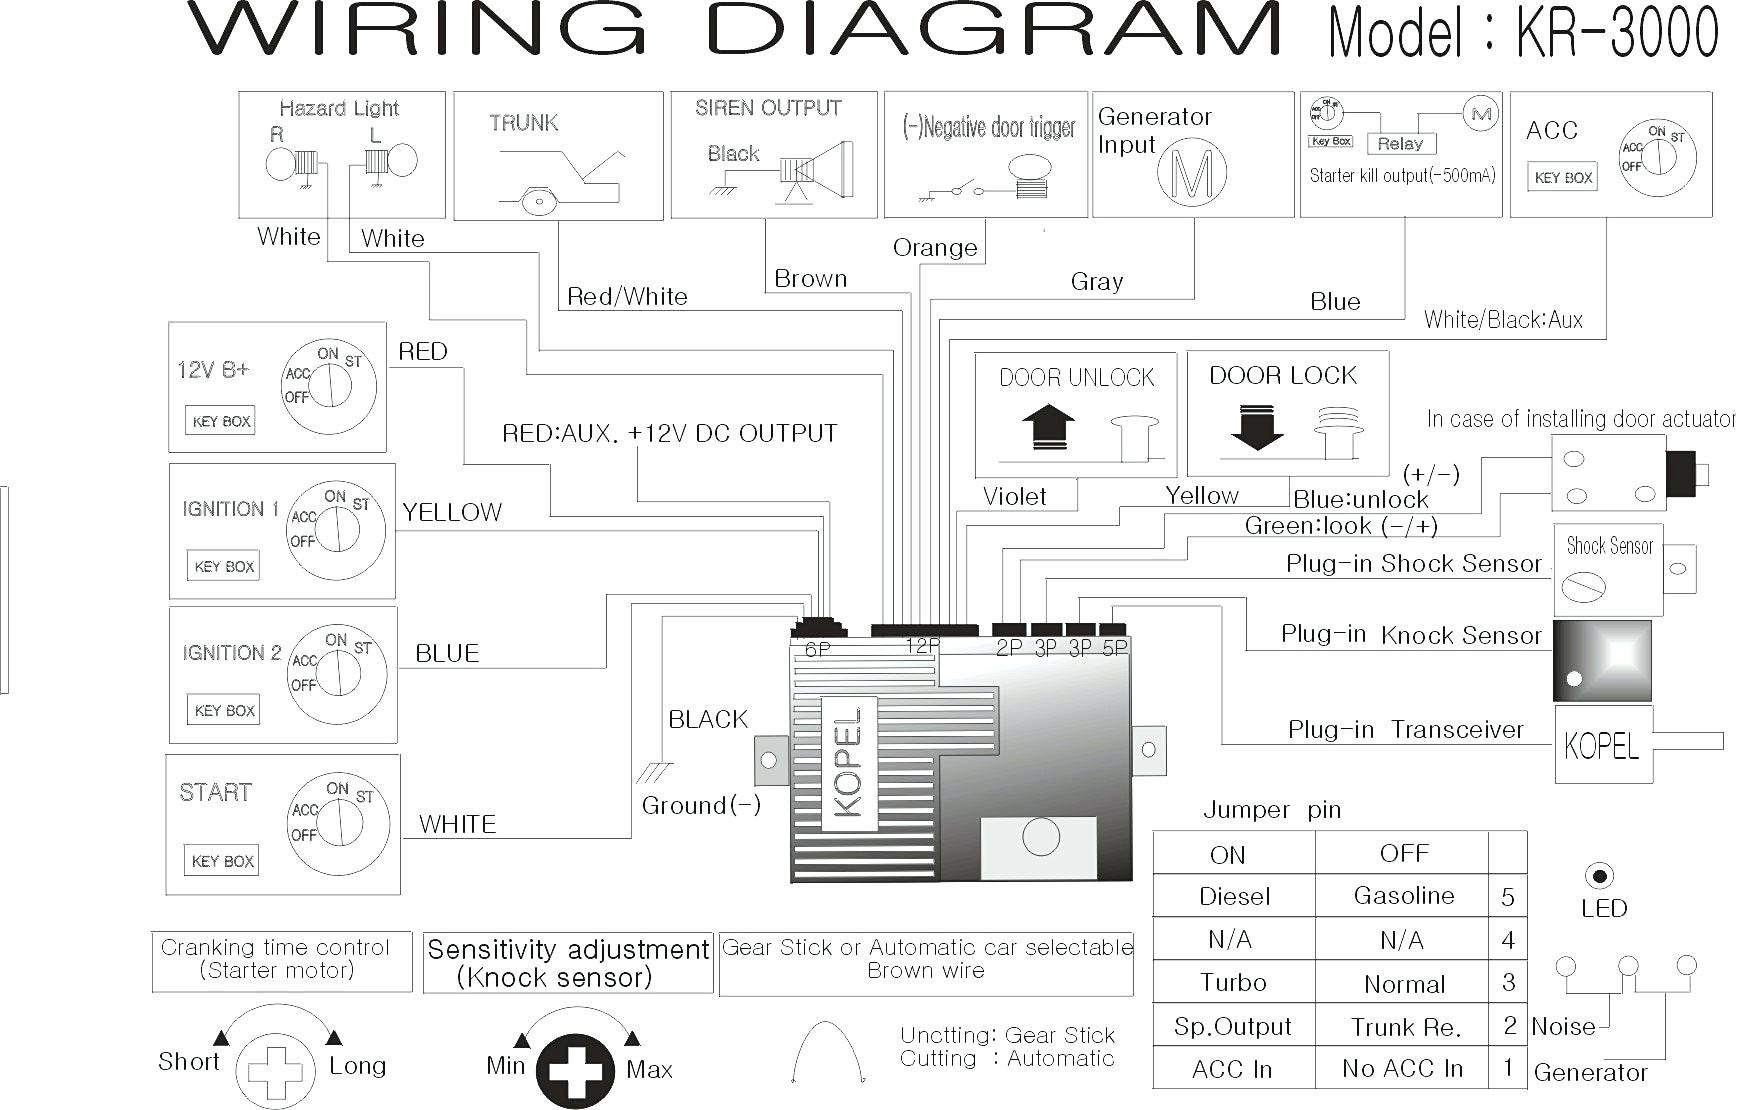 Pioneer Avh X2800Bs Wiring Diagram Simplified Shapes Pioneer Avh - Pioneer Avh-X2800Bs Wiring Diagram